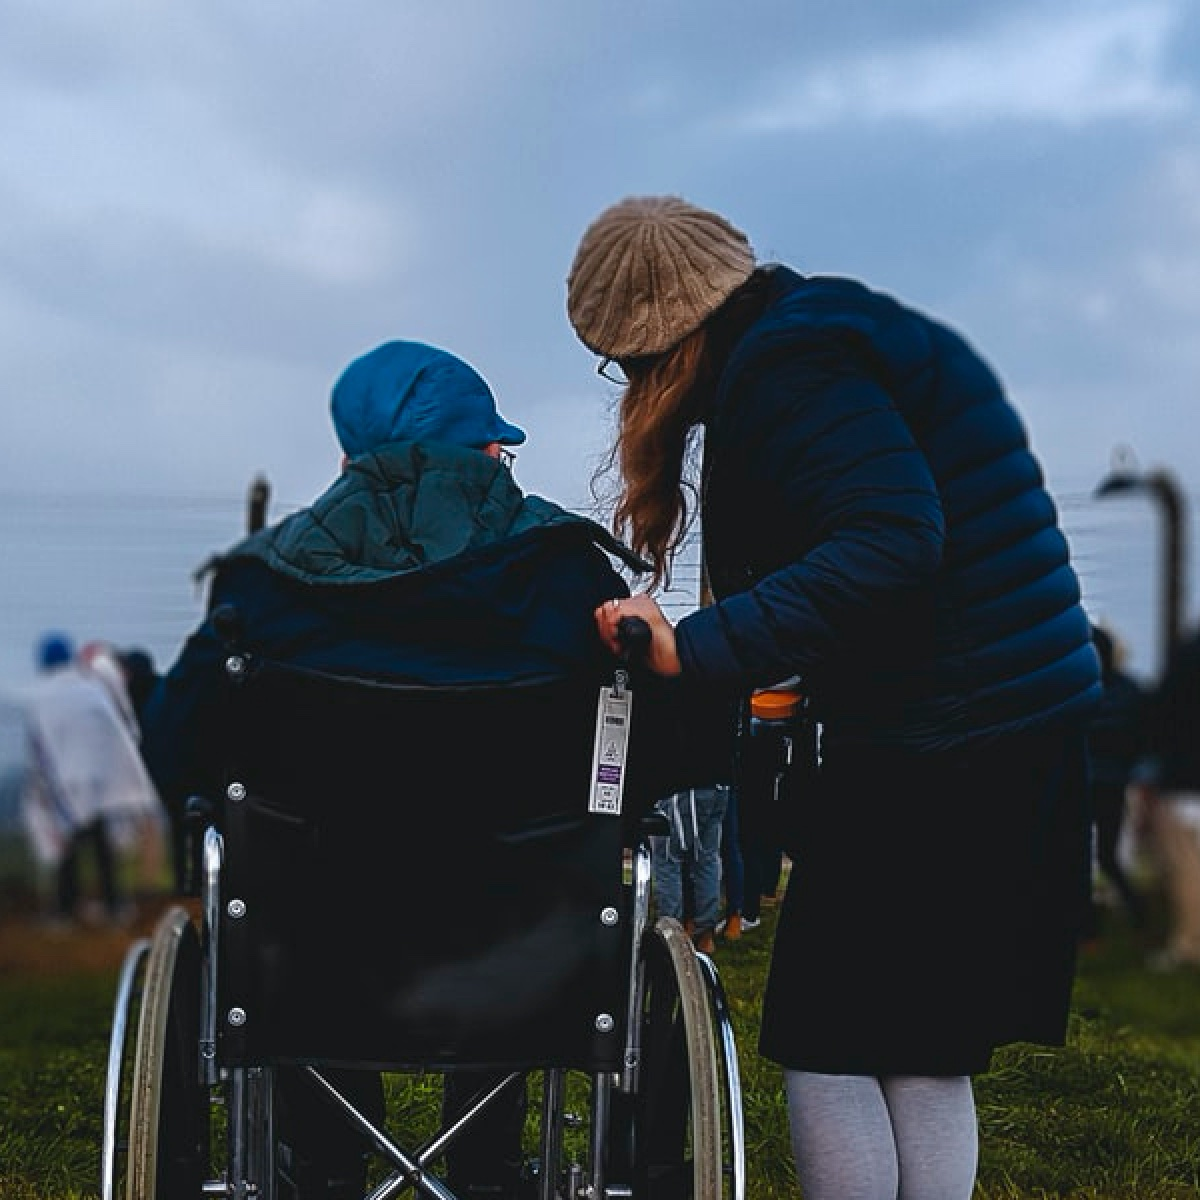 Lady speaking with person in wheelchair